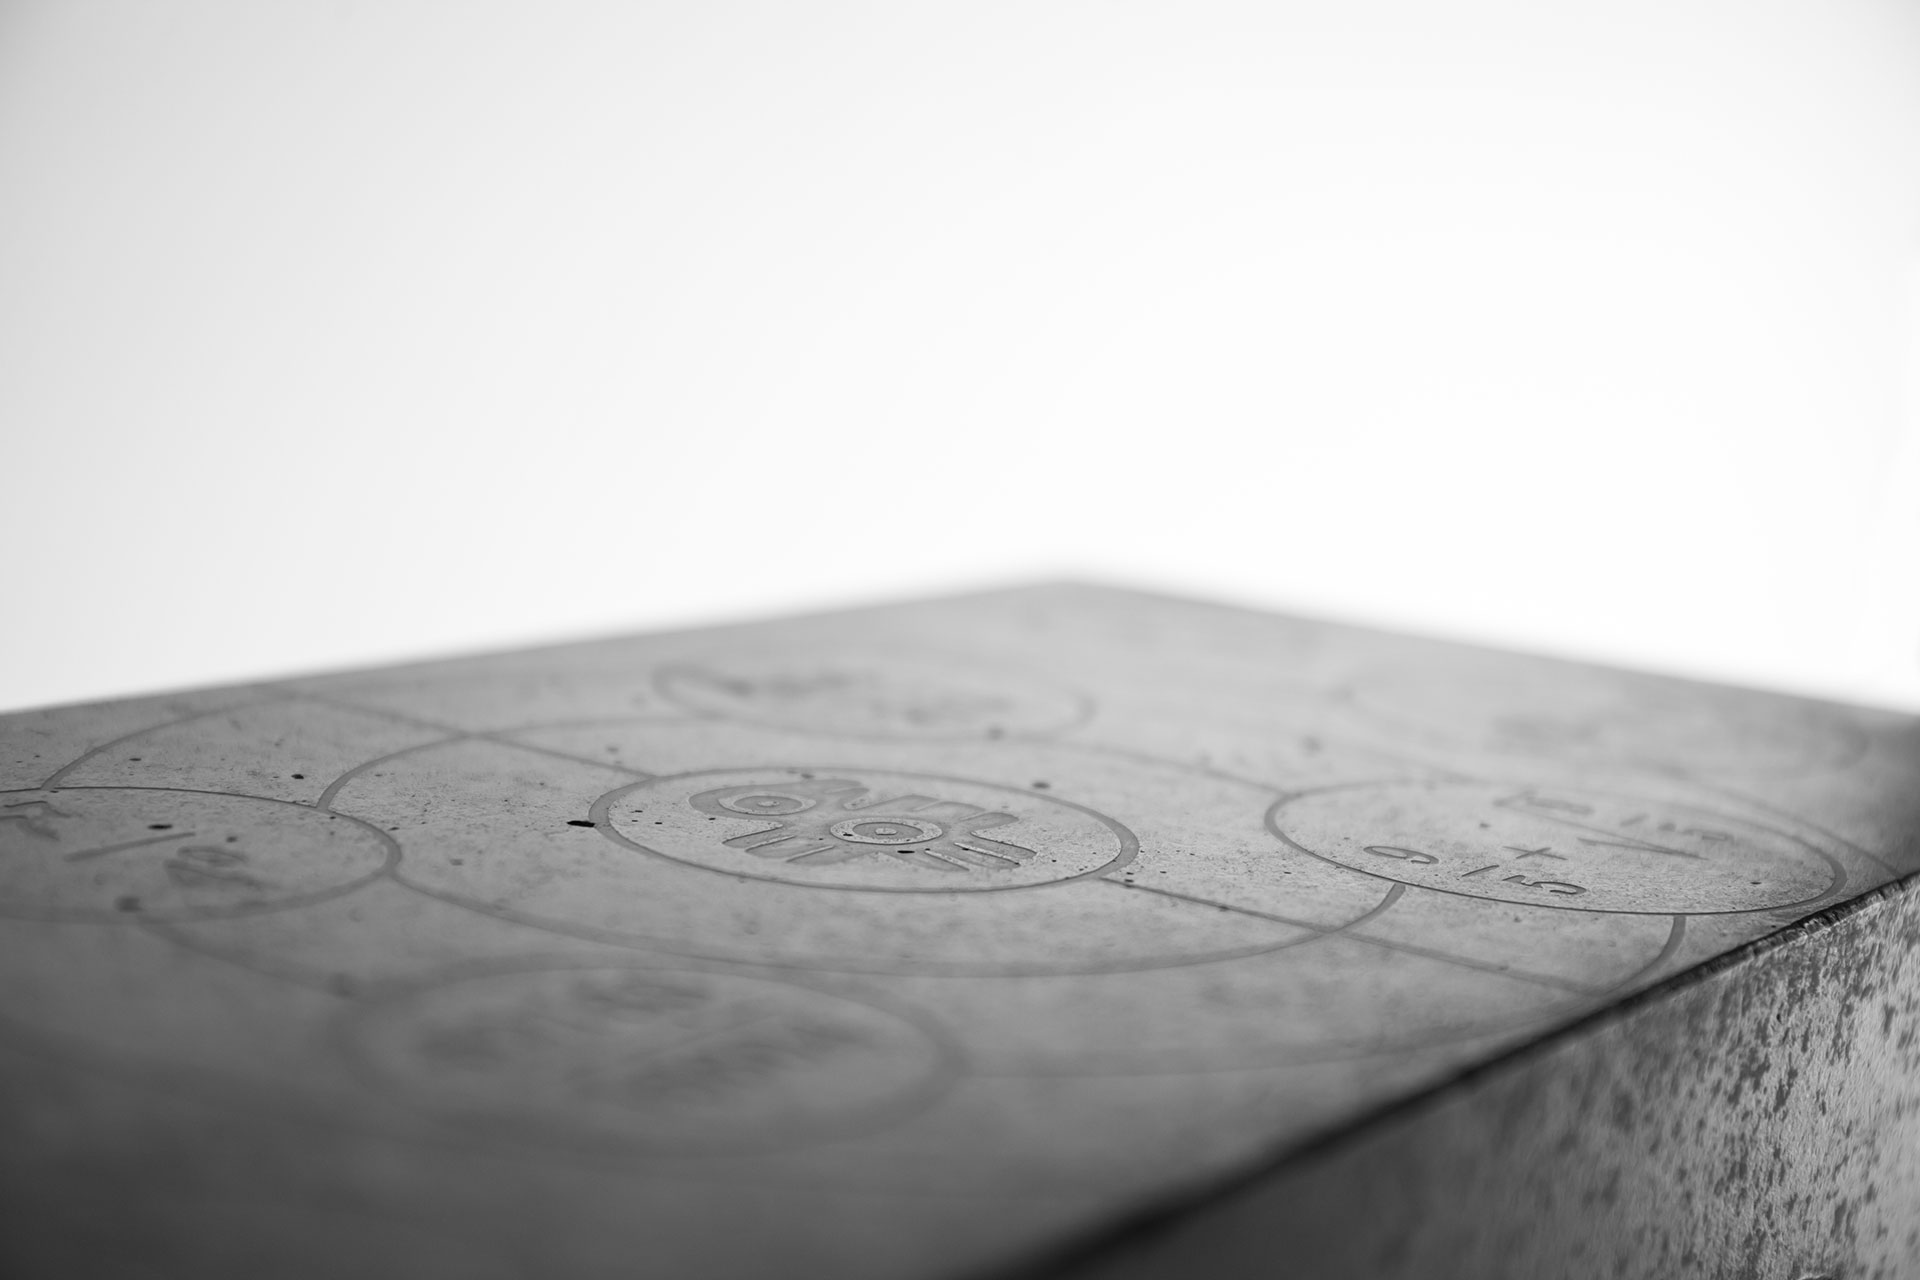 Engraved top of the concrete stool